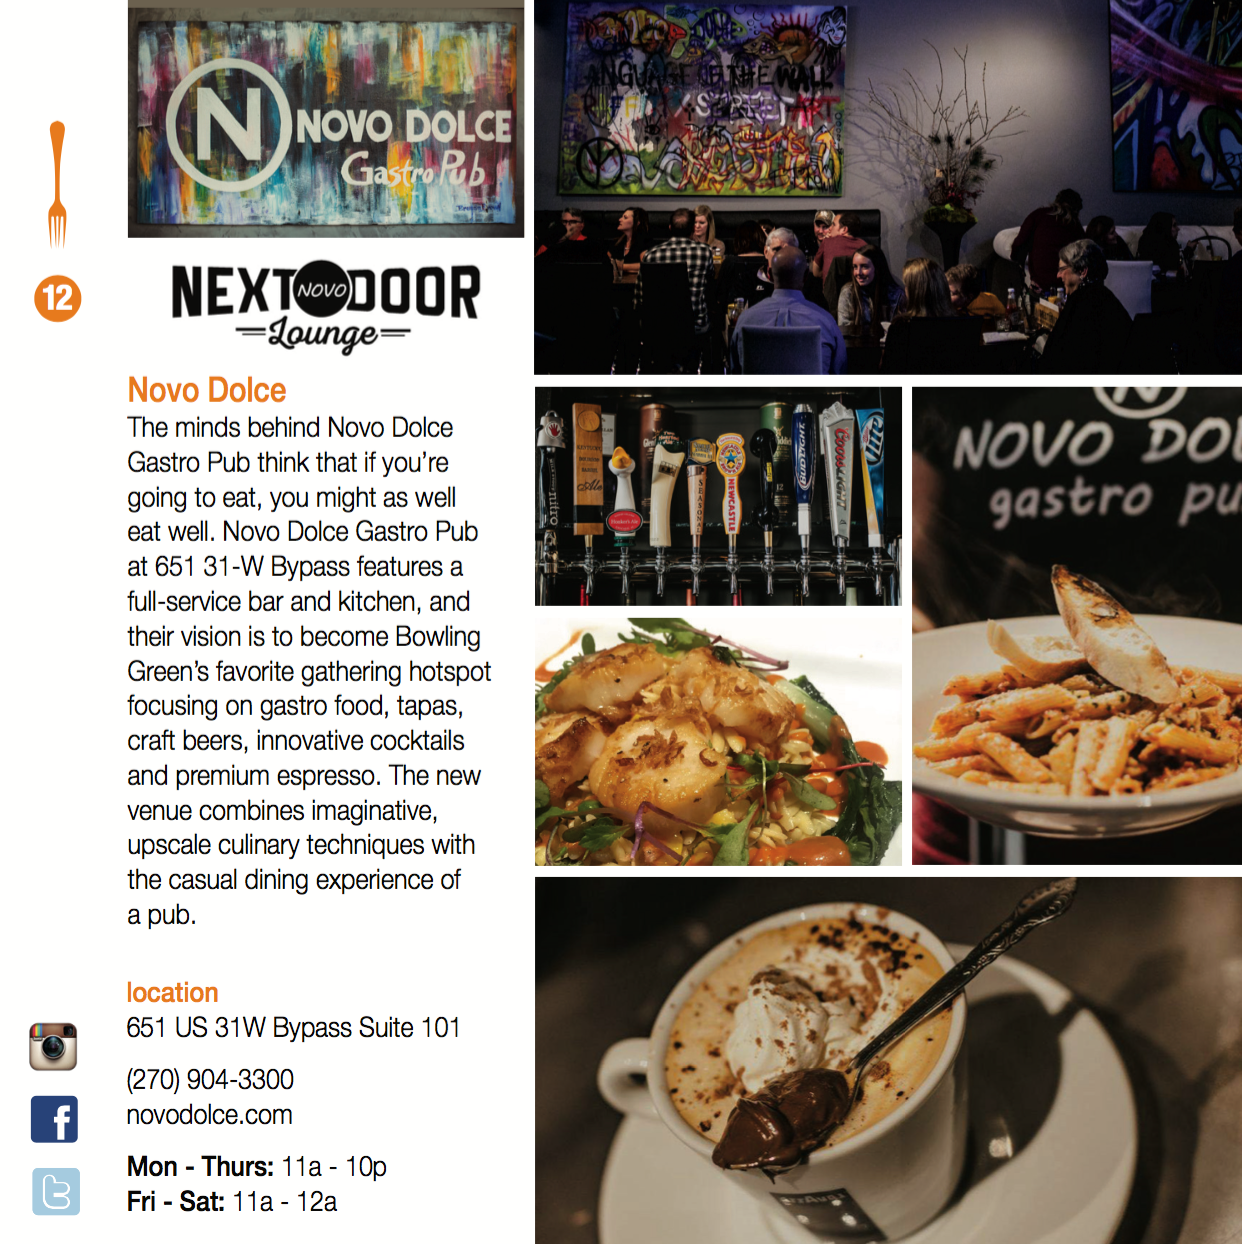 Novo Dolce Gastro Pub & Next Door Lounge